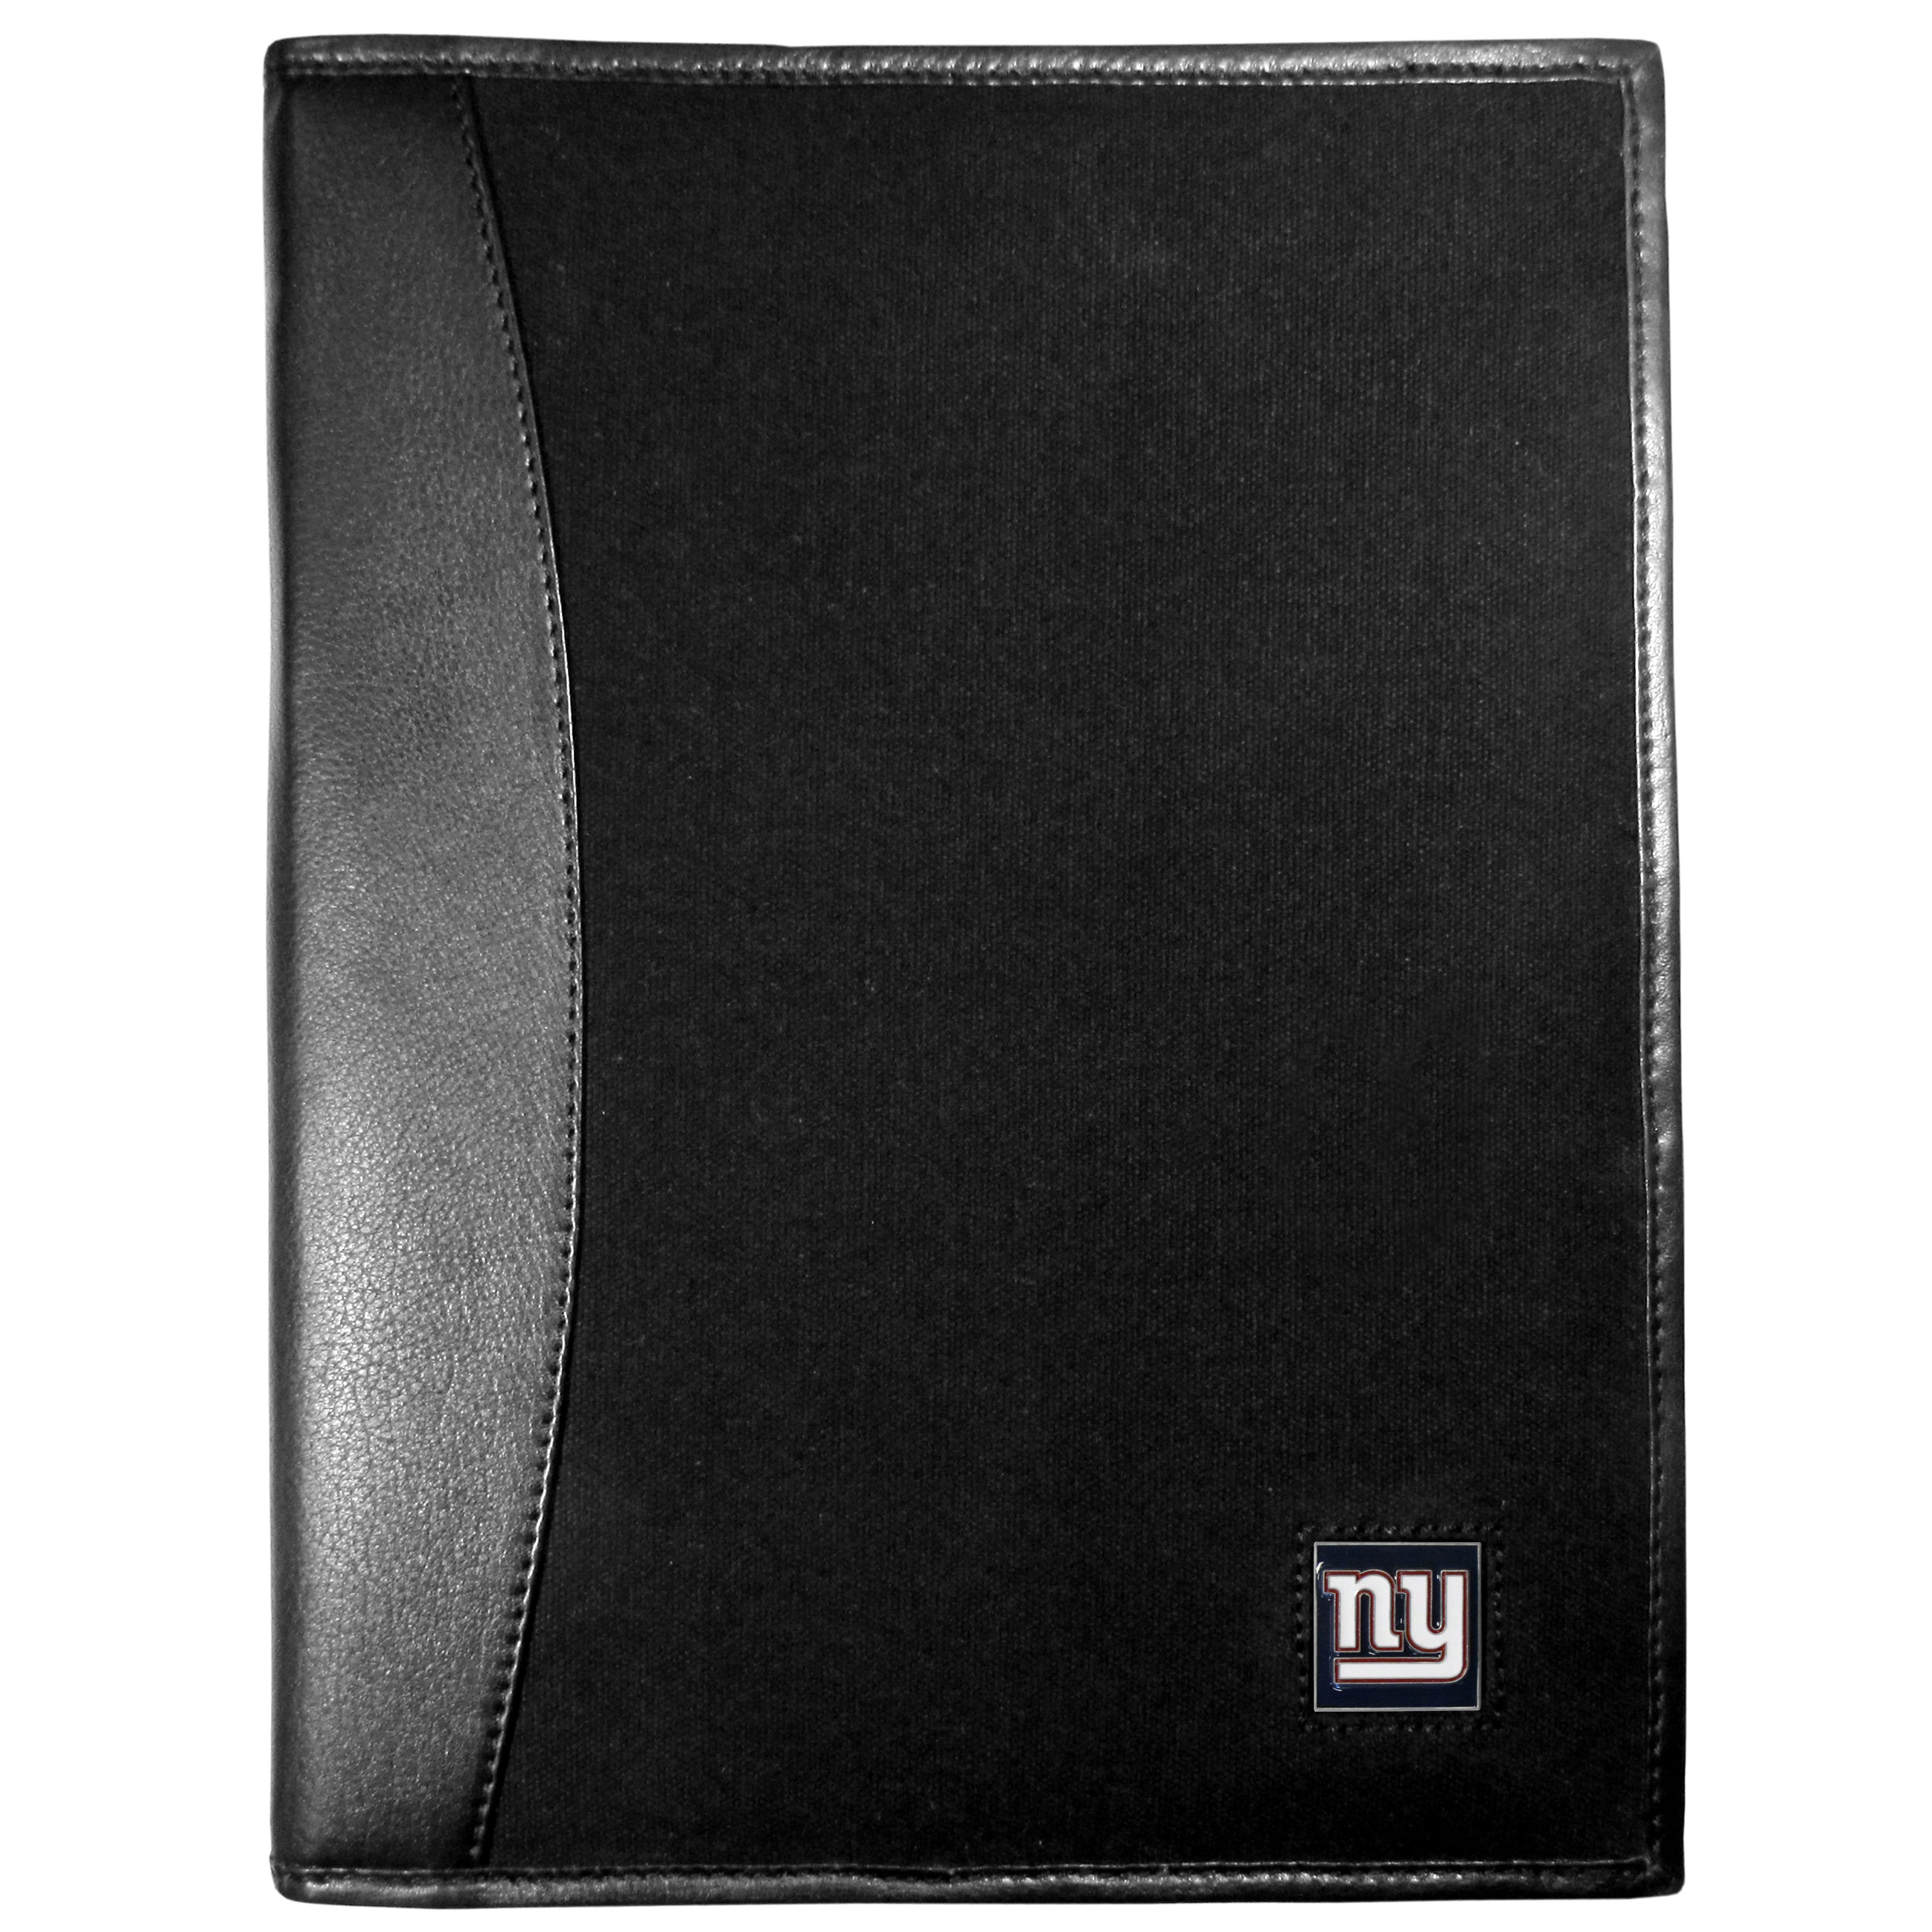 New York Giants Leather and Canvas Padfolio - Our leather and canvas padfolio perfectly blends form and function. The attractive portfolio is bound in fine grain leather with an attractive canvas finish and the interior is a soft nylon. This high quality business accessory also features a fully cast metal New York Giants emblem that is subtly set in the corner of the organizer. It is packed with features like 6 card slots for badges, business cards, hotel keys or credit cards and ID with a large pocket for loose papers and a writing tablet slot making it a must-have for the professional on the go.